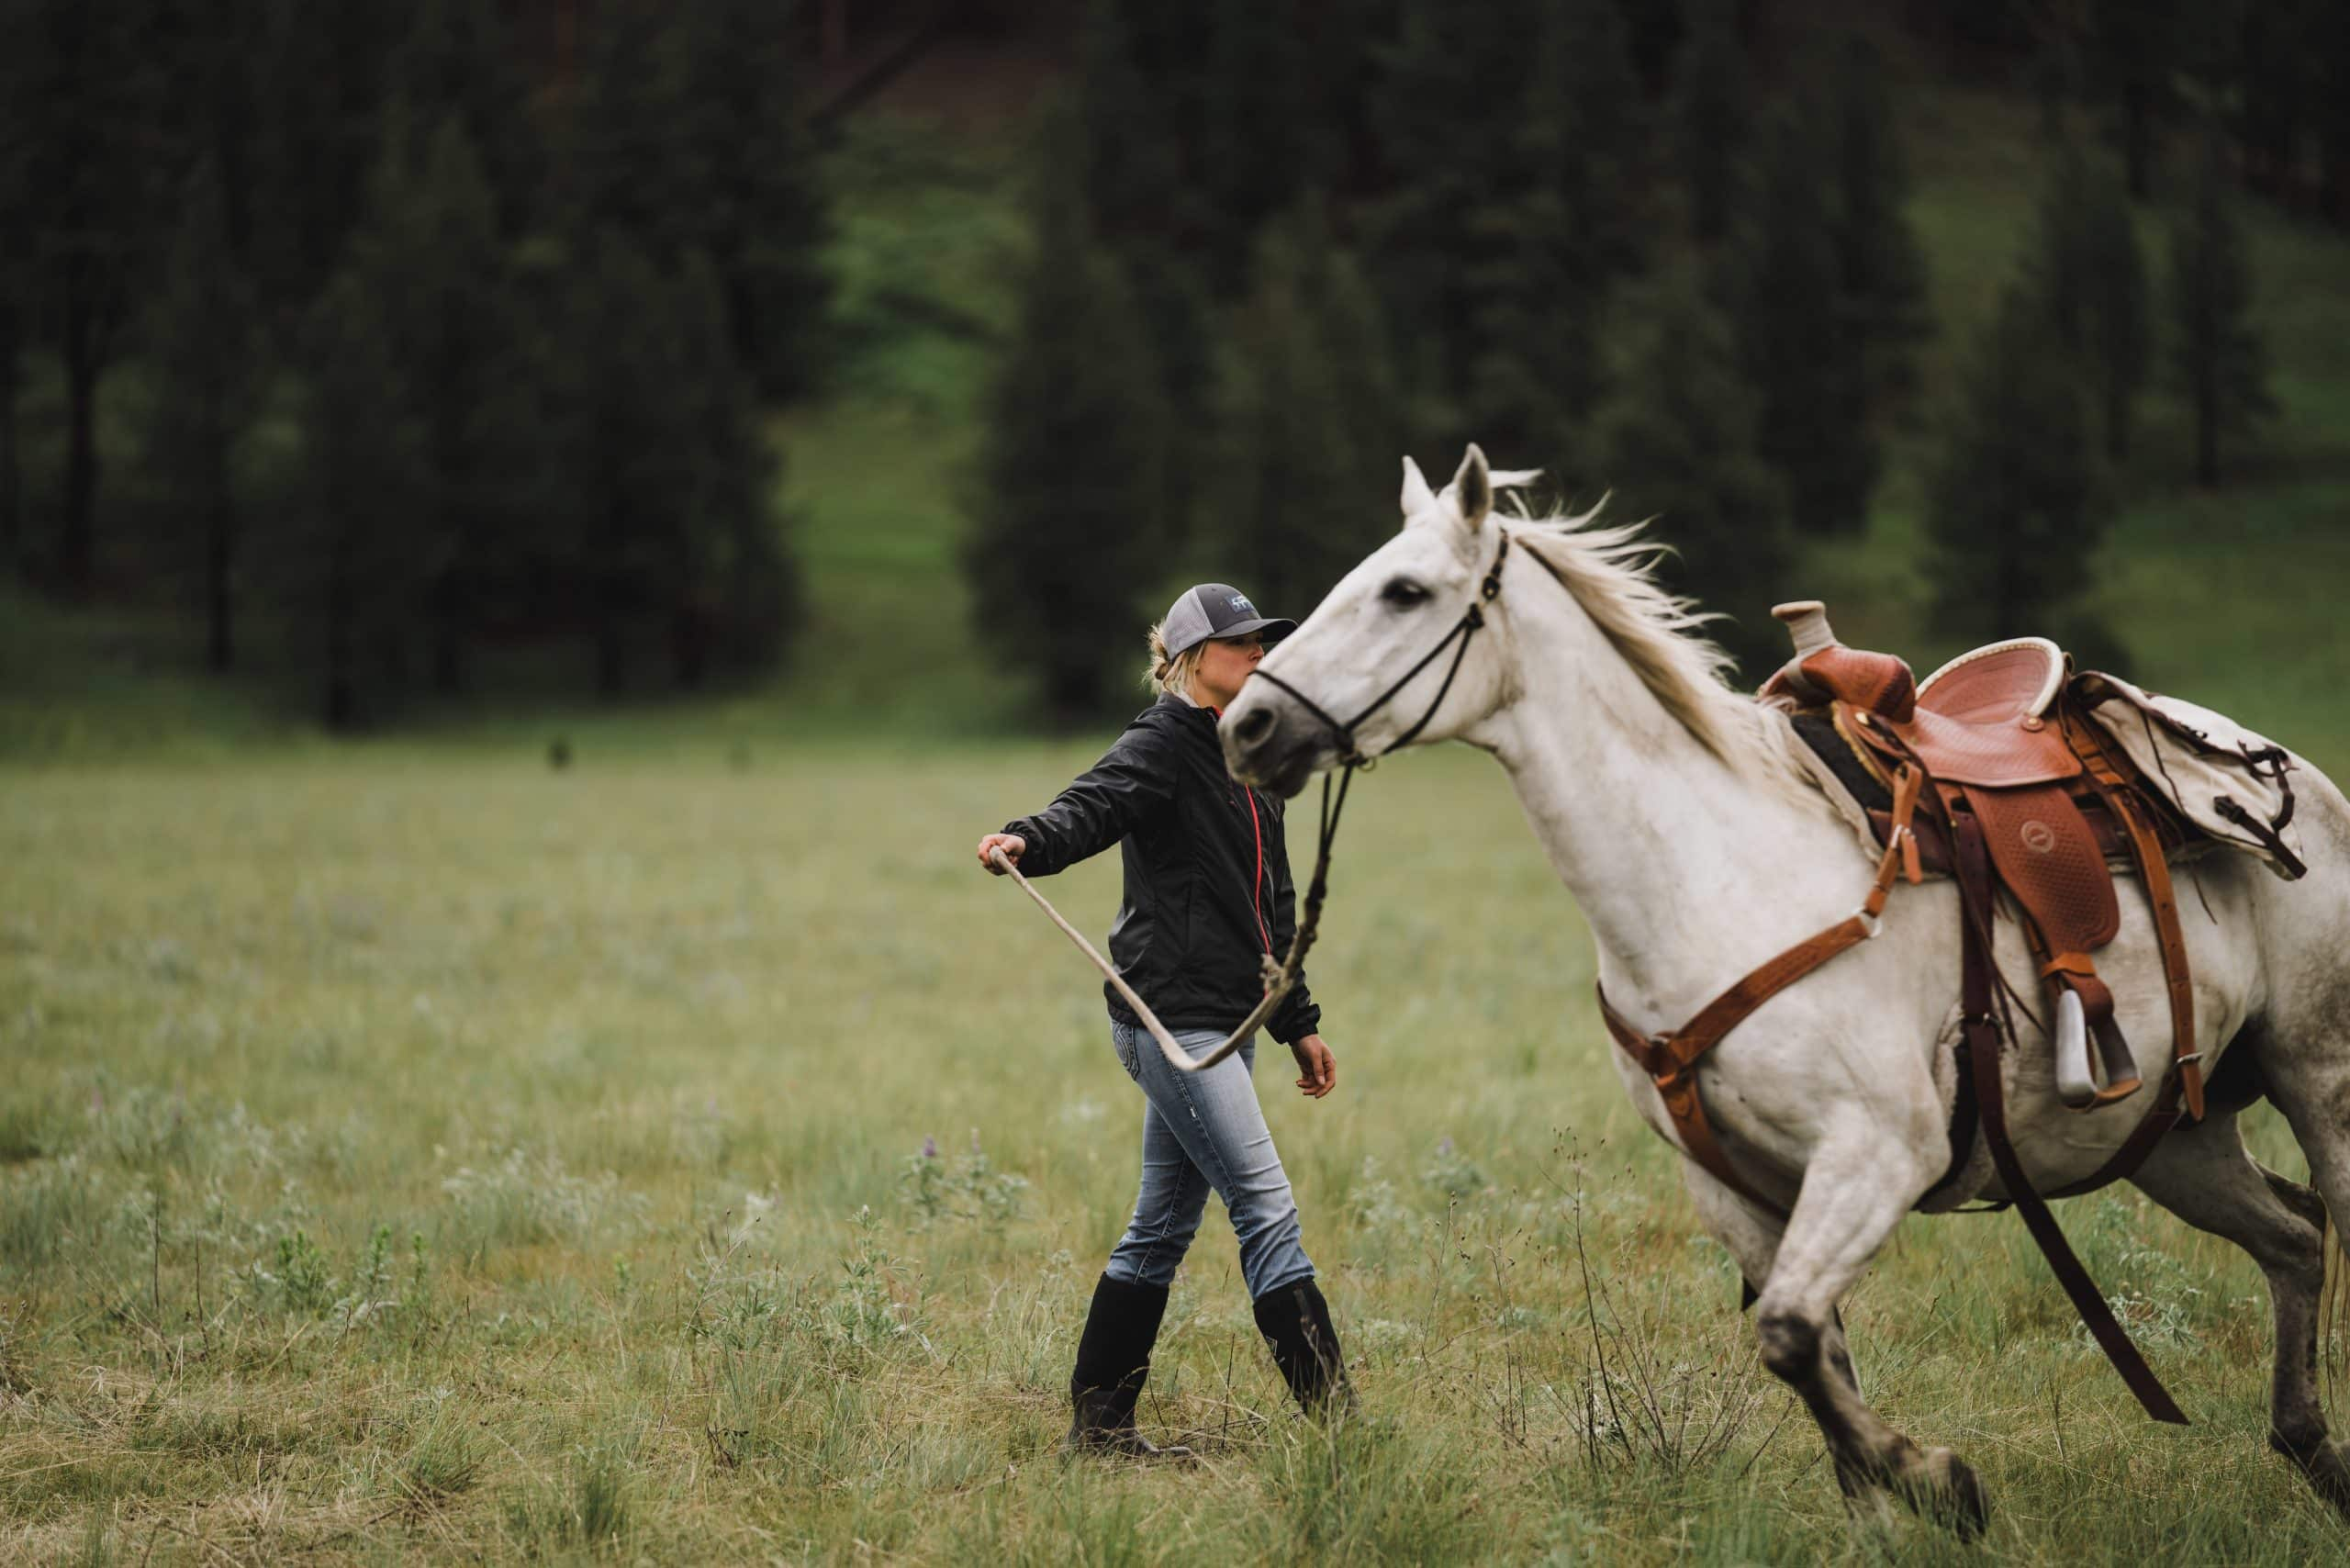 A shed hunter leads her excited horse around the grass before the start of the shed hunt.